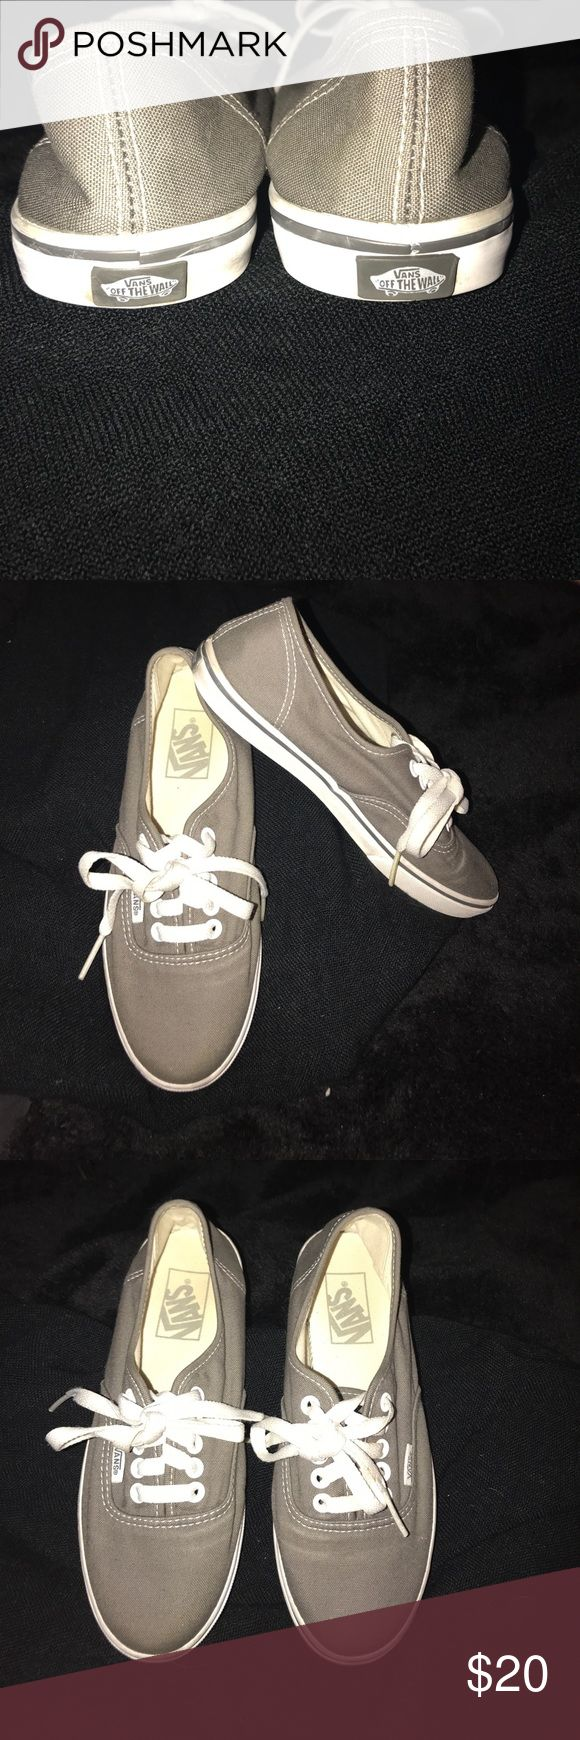 Vans Shoes. unisex. Size 6 Women's. Size 4.5 Mens Excellent condition pre-owned Vans shoes. Gray exterior cloth Material with white trim sole and shoe laces. Size 6 Women's & size 4.5 Men's Vans Shoes Sneakers